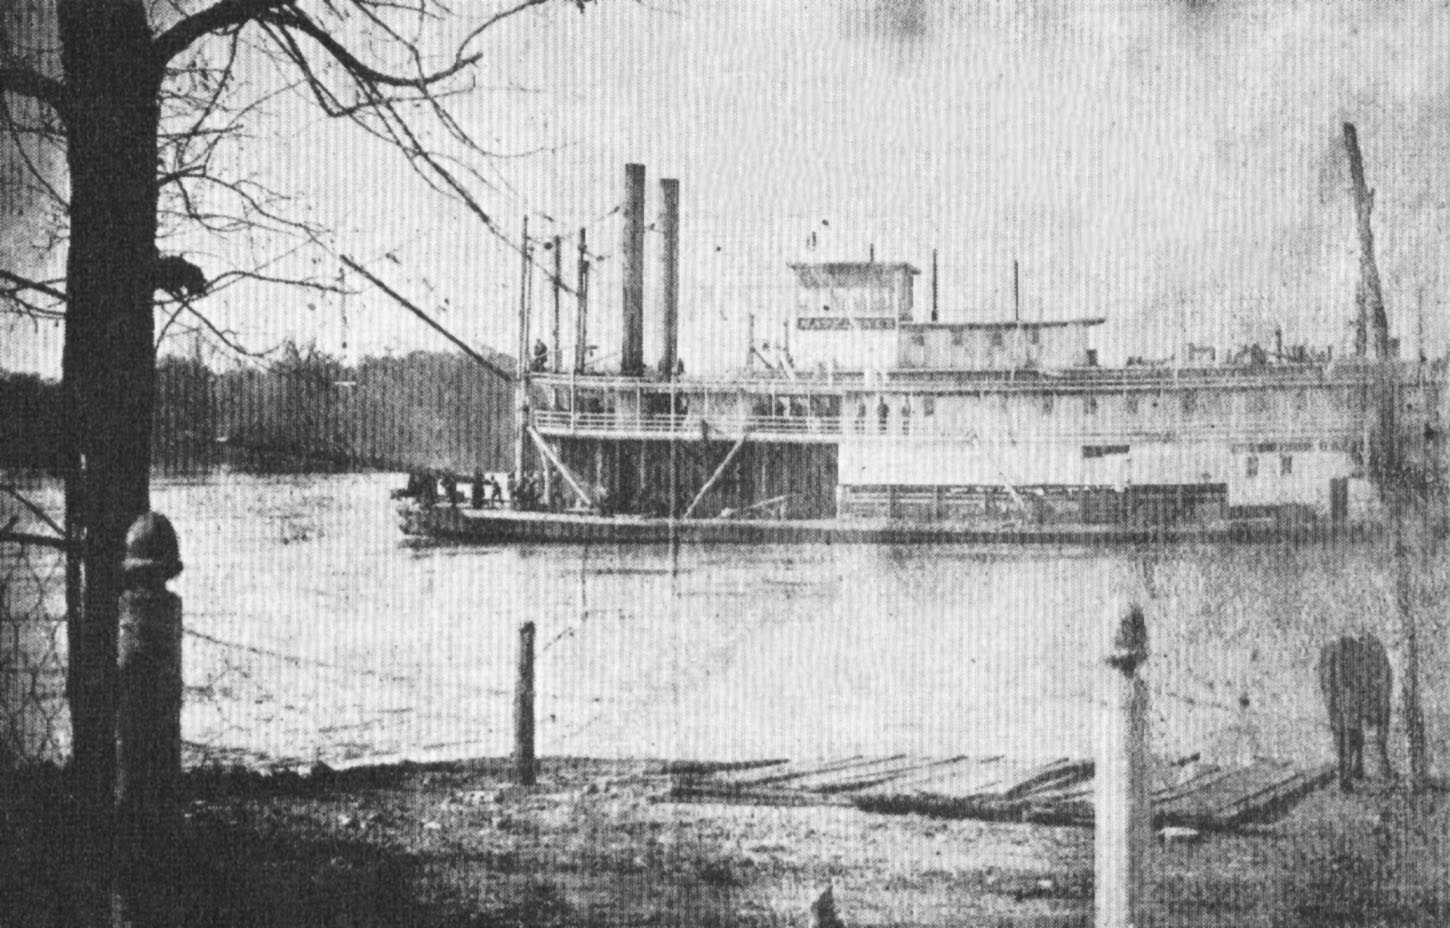 The sternwheeler Mayflower passes Clifton, Tenn., on the Tennessee River, during high water. Note the steamboat acorn finials atop the posts in the foreground. (Keith Norrington collection)